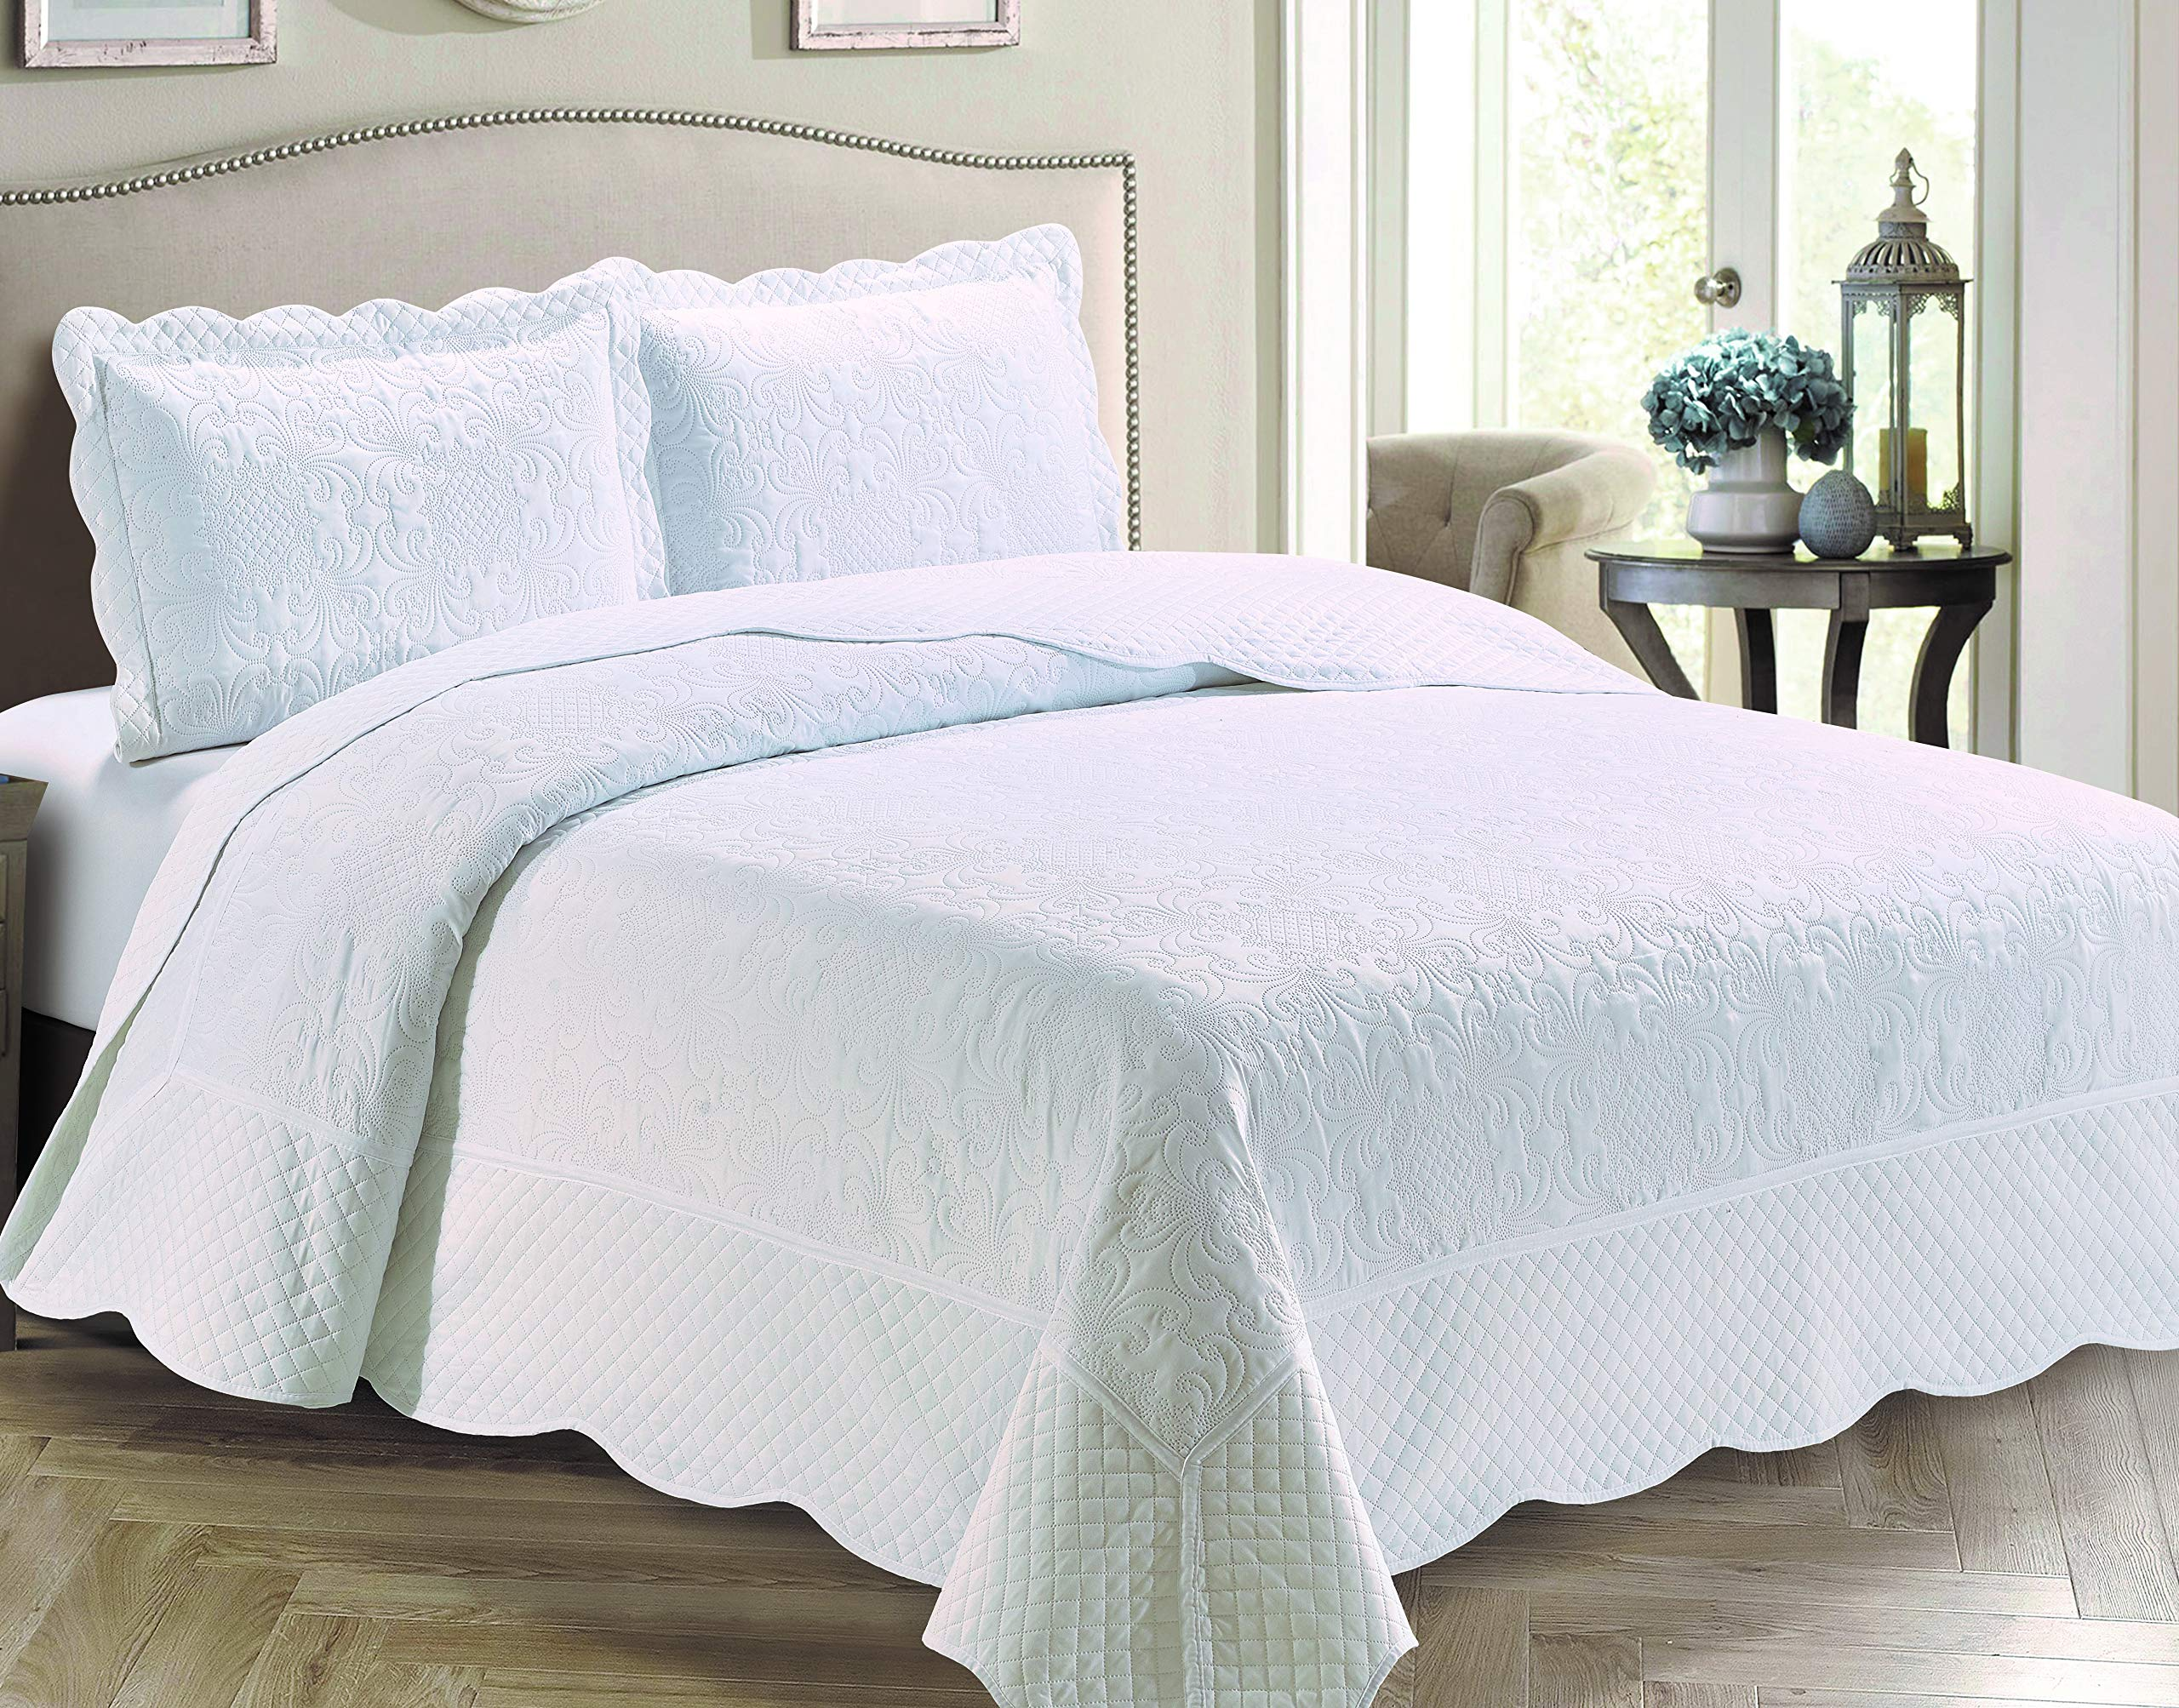 Kids Zone Home Linen 3 Piece Full/Queen Size Veronica Solid White Color Coverlet Bedspread. by Kids Zone Home Linen